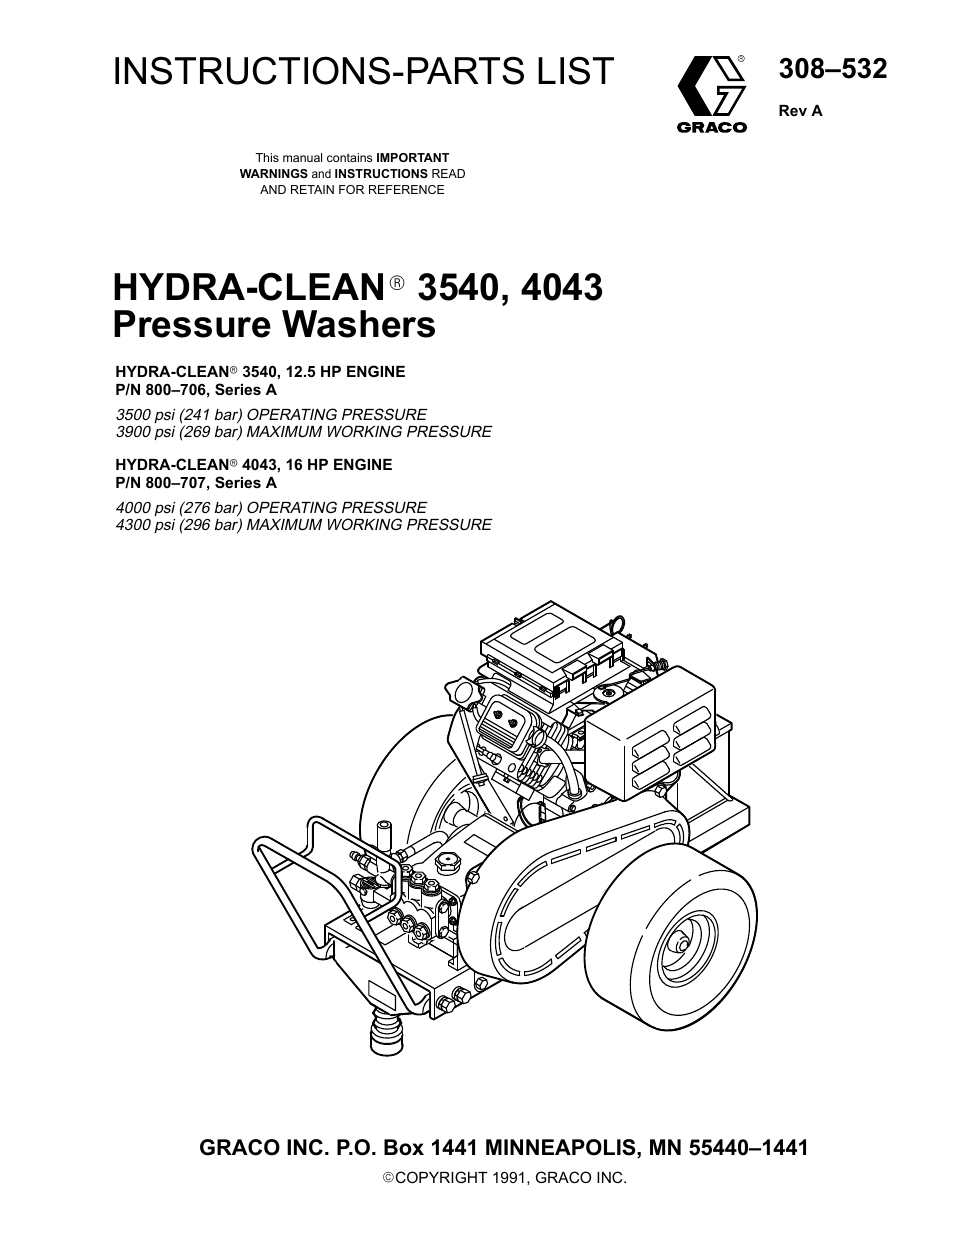 Graco Inc Hydra Clean 800 706 User Manual 25 Pages Also For